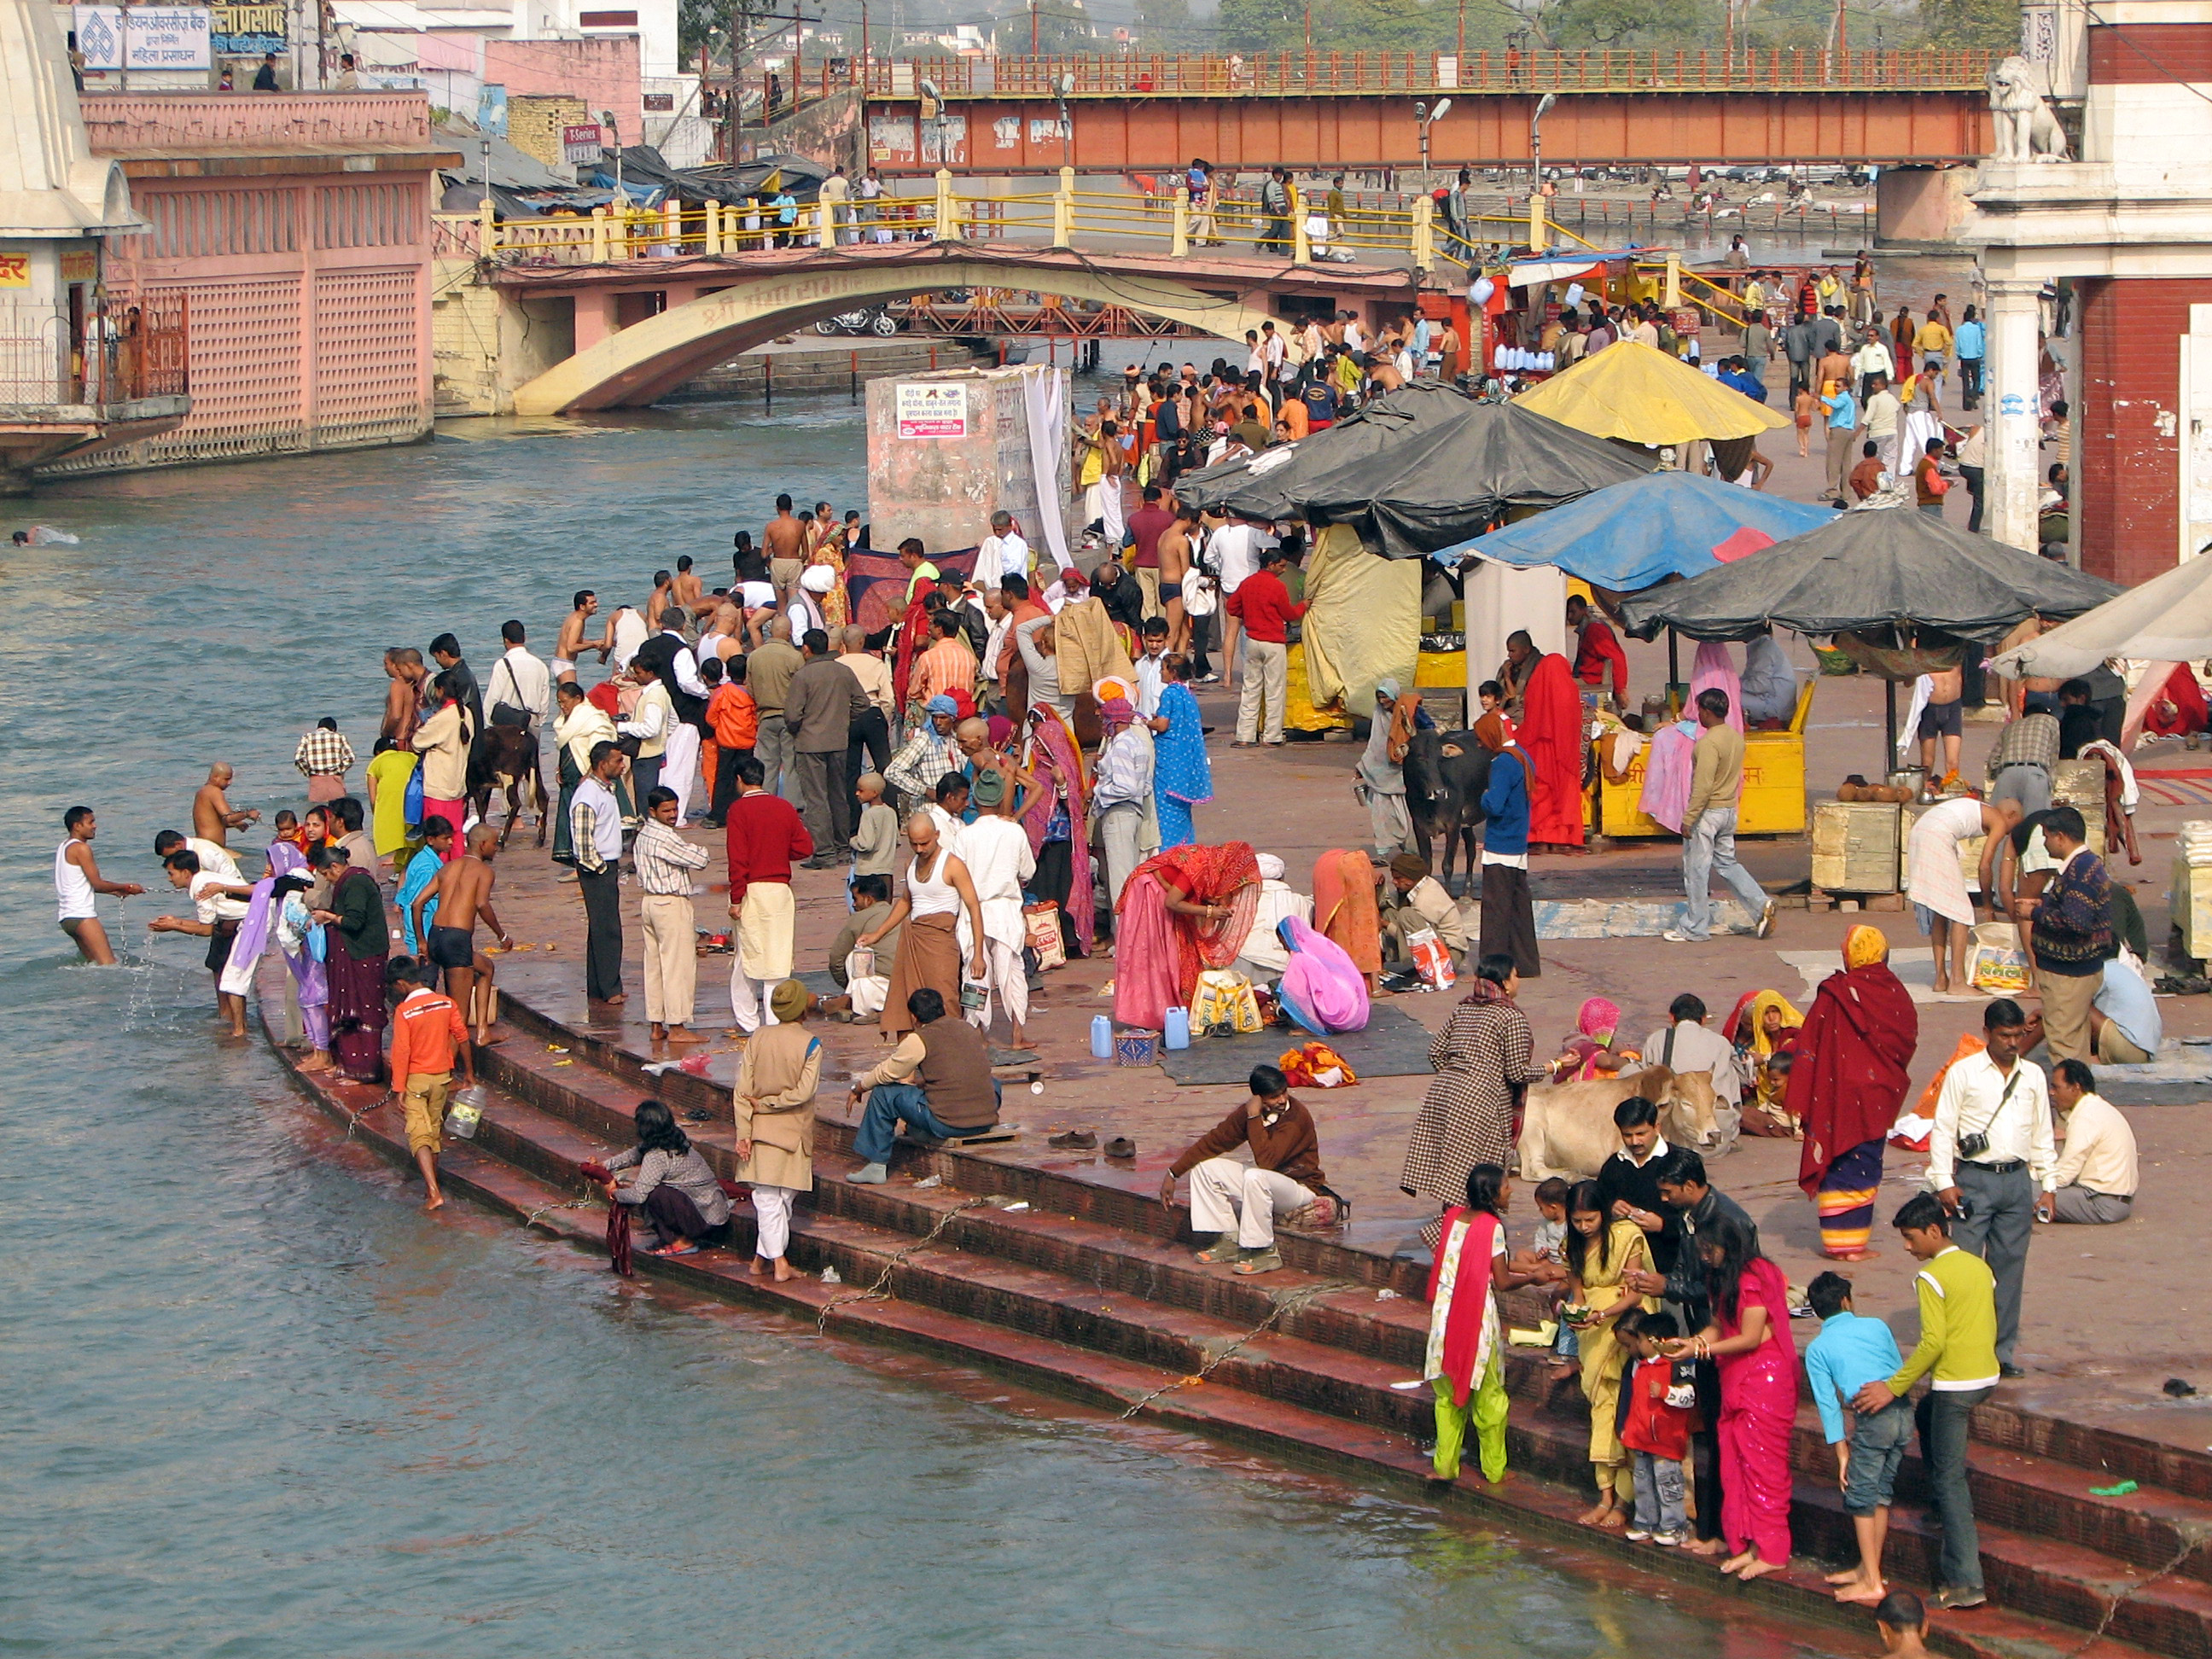 Ganesh Ghat Haridwar, India - Location, Facts, History and all ...